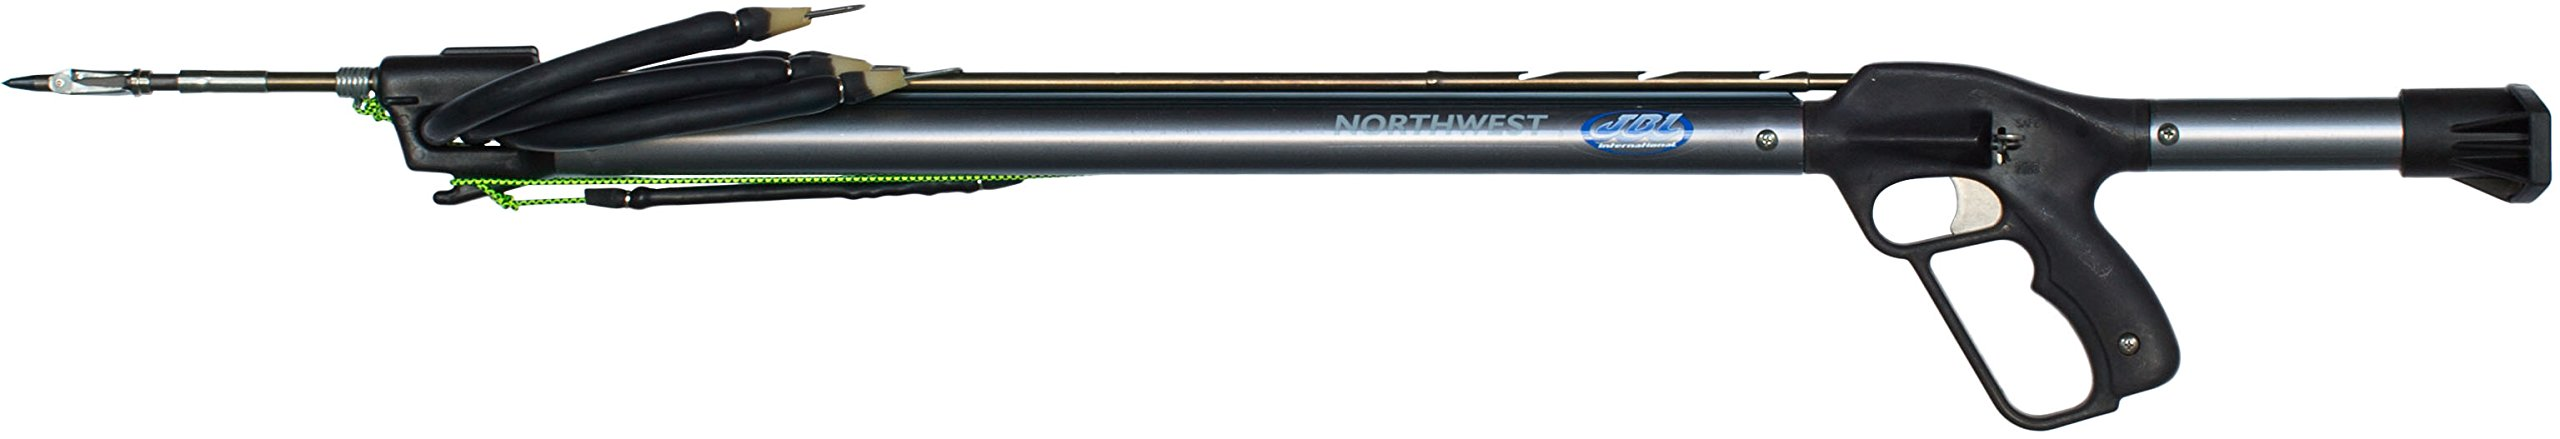 JBL 38-Special Northwest Speargun by JBL